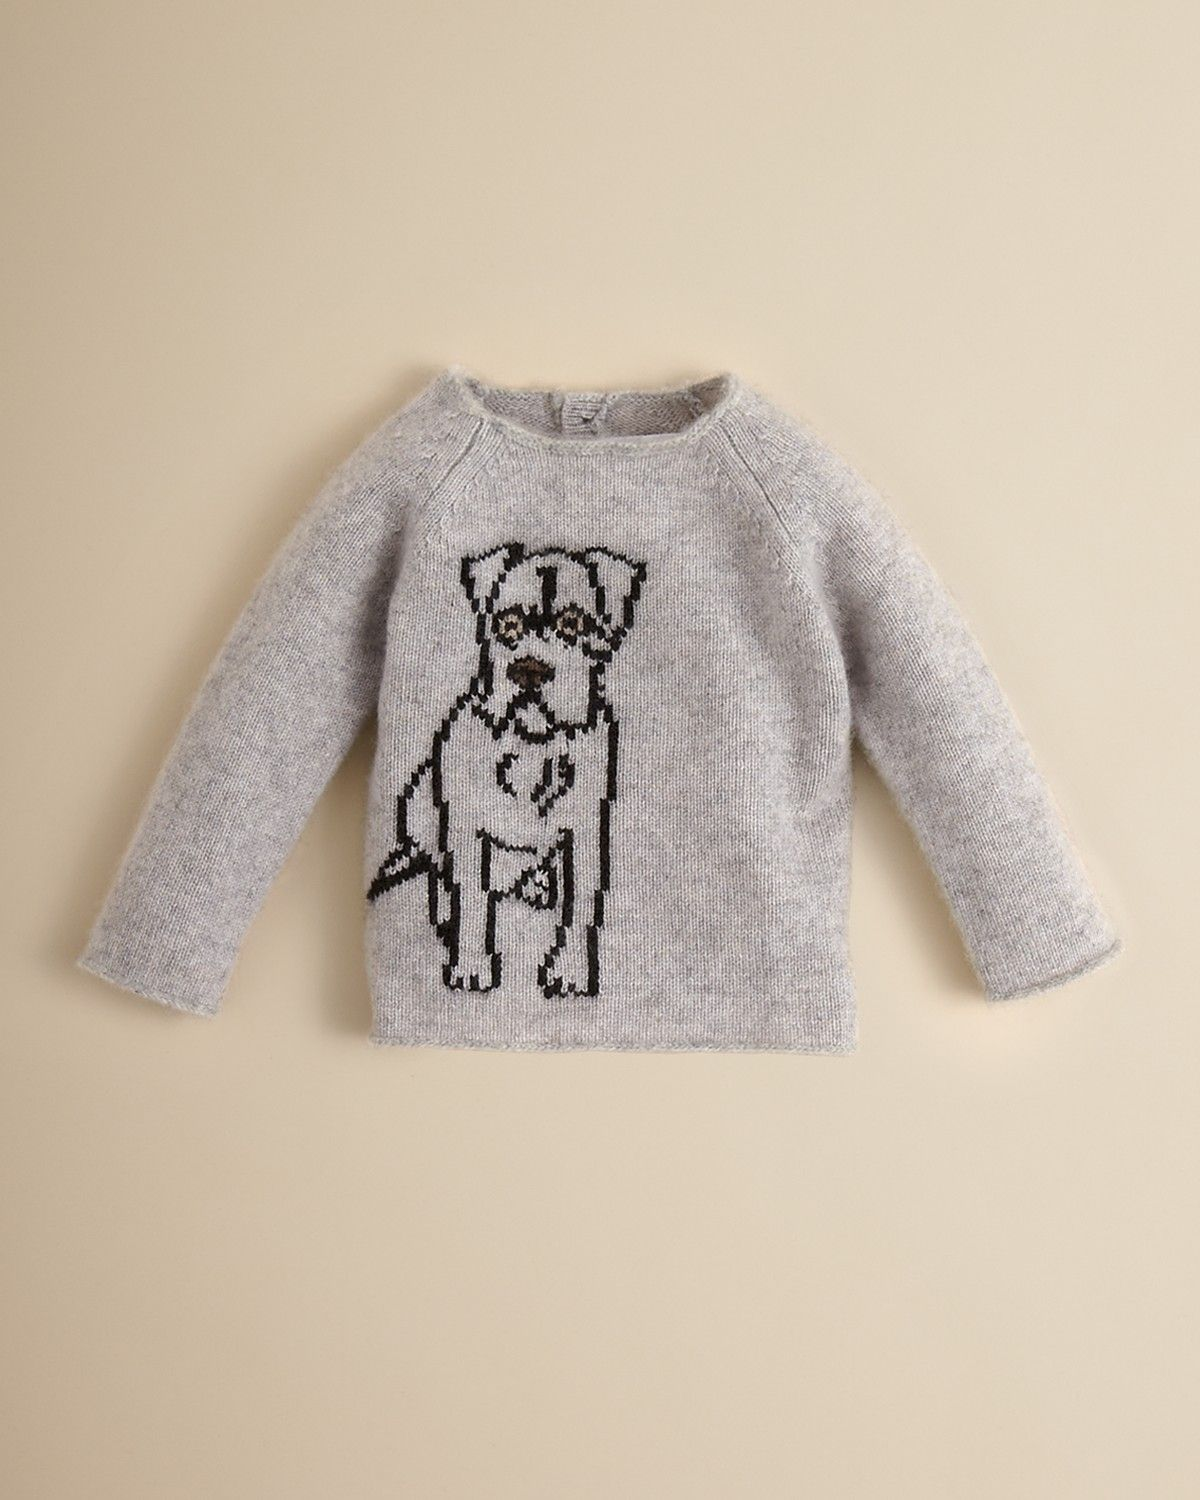 2e8491c2f0d7 Burberry Infant Girls  Dane Dog Intarsia Cashmere Sweater - Sizes 6 ...